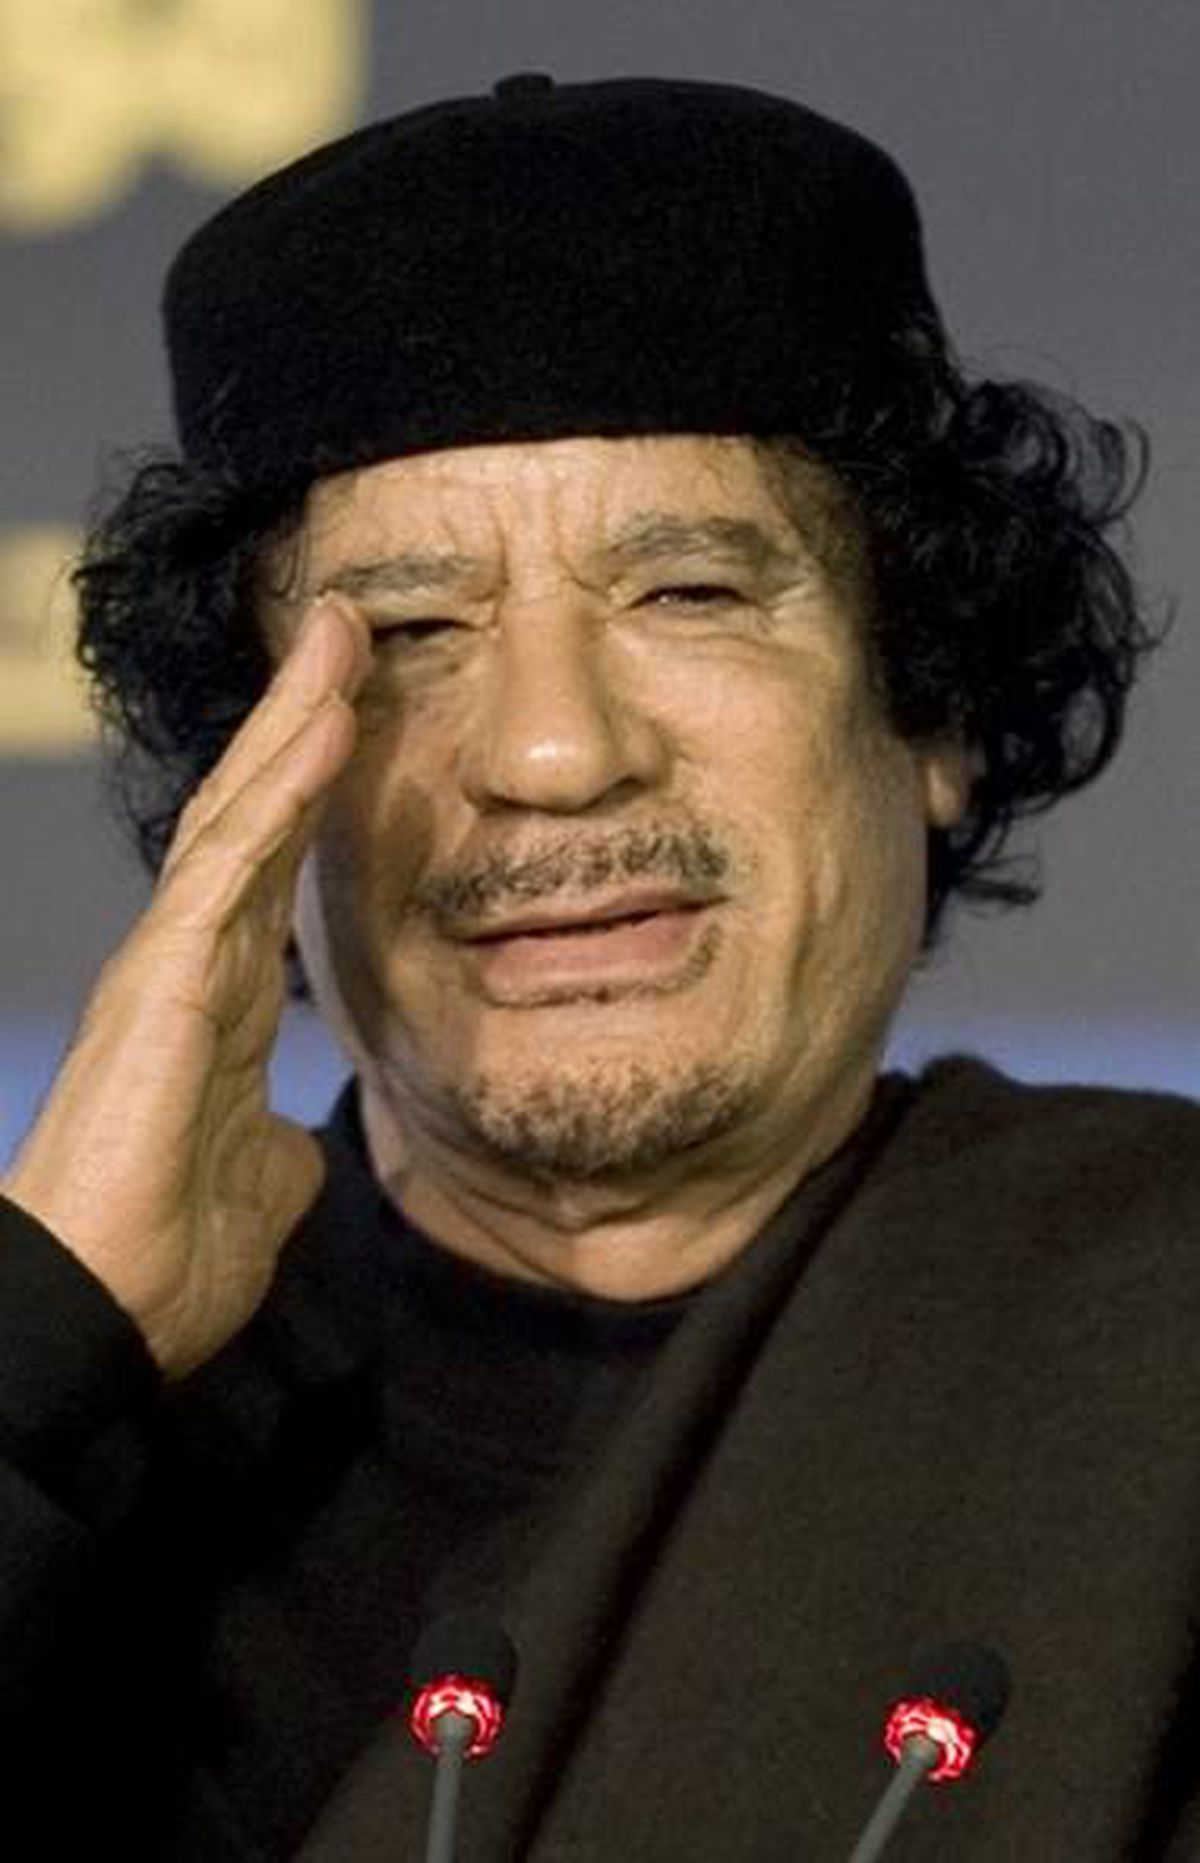 LIBYA: Libyan leader Moammar Gadhafi was described as erratic and in the near constant company of a Ukrainian nurse who was described in one cable as 'a voluptuous blonde,' according to the New York Times.